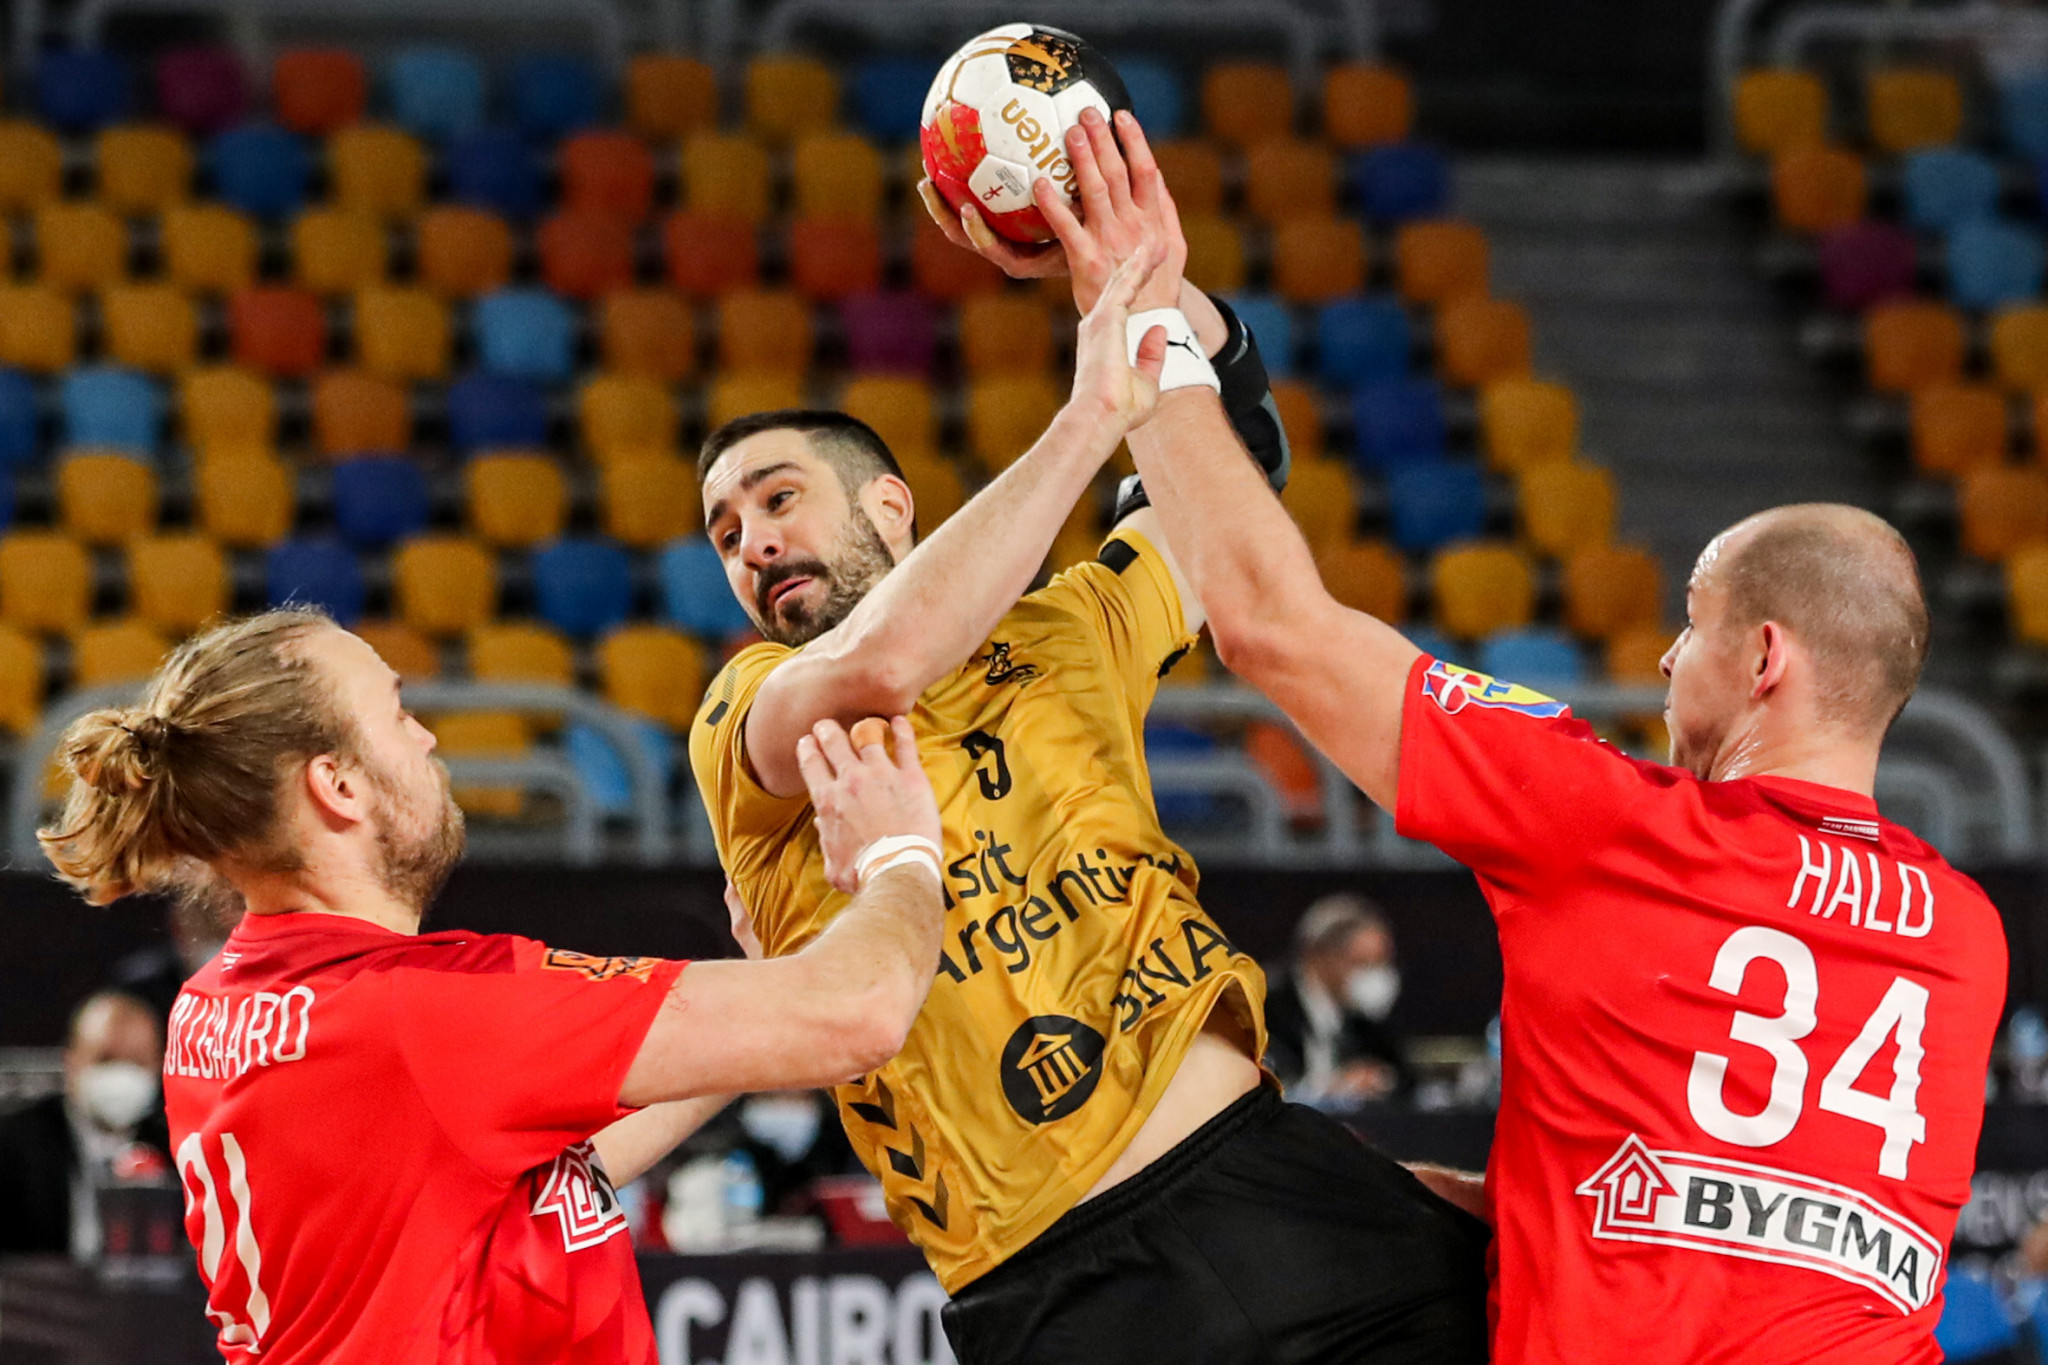 Defending champions Germany and Argentina have both advanced to the main round of the World Men's Handball Championship ©Getty Images